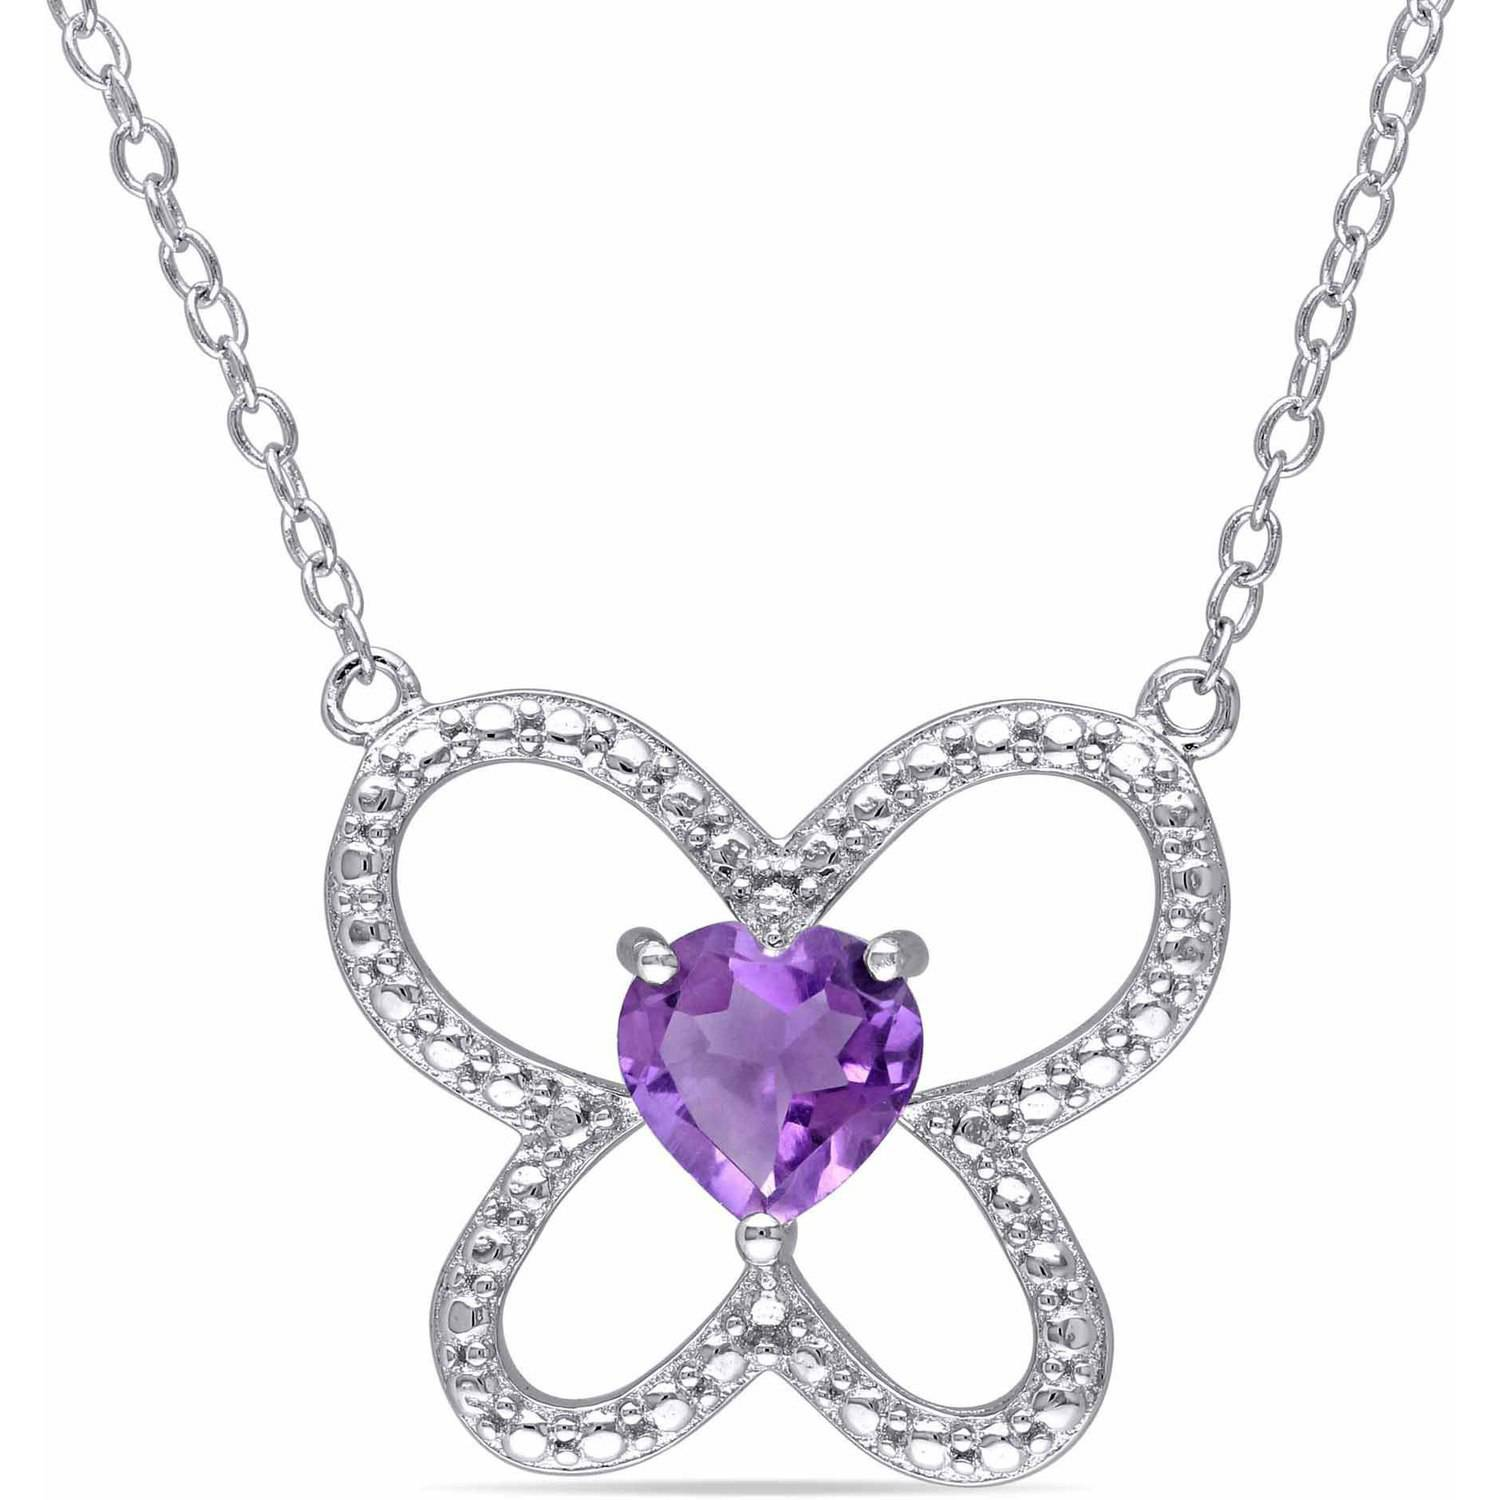 Tangelo 5/8 Carat T.G.W. Amethyst Sterling Silver Flower Heart Necklace, 18""